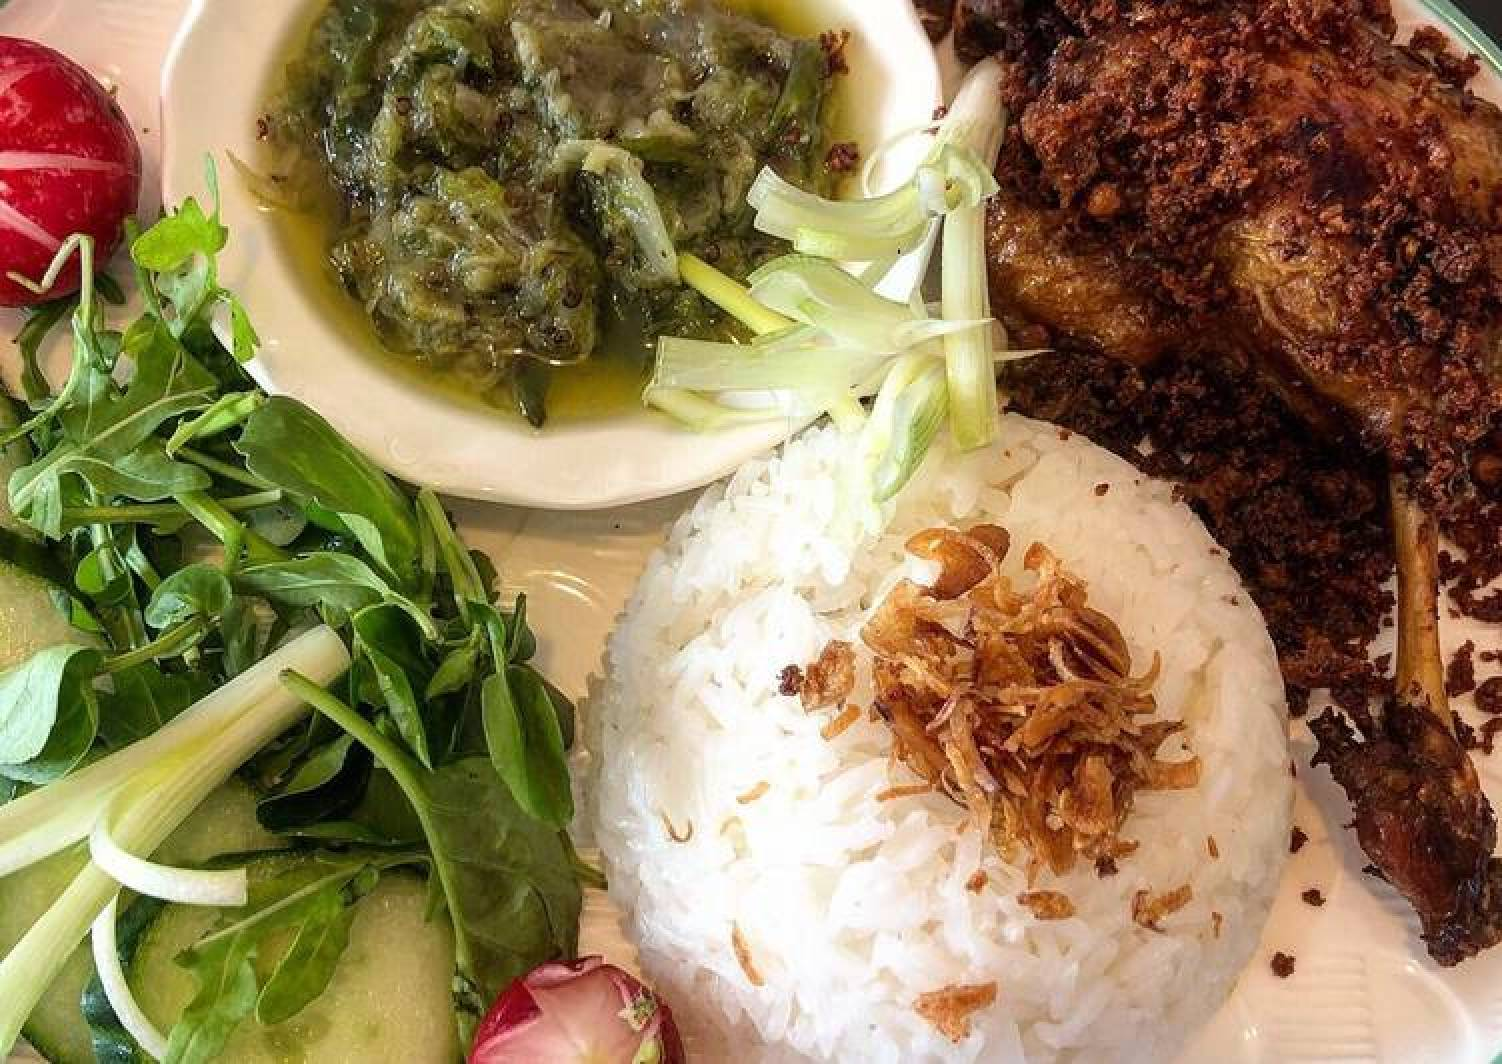 Indonesian deep fried duck with green chili sambal and crunchy bits